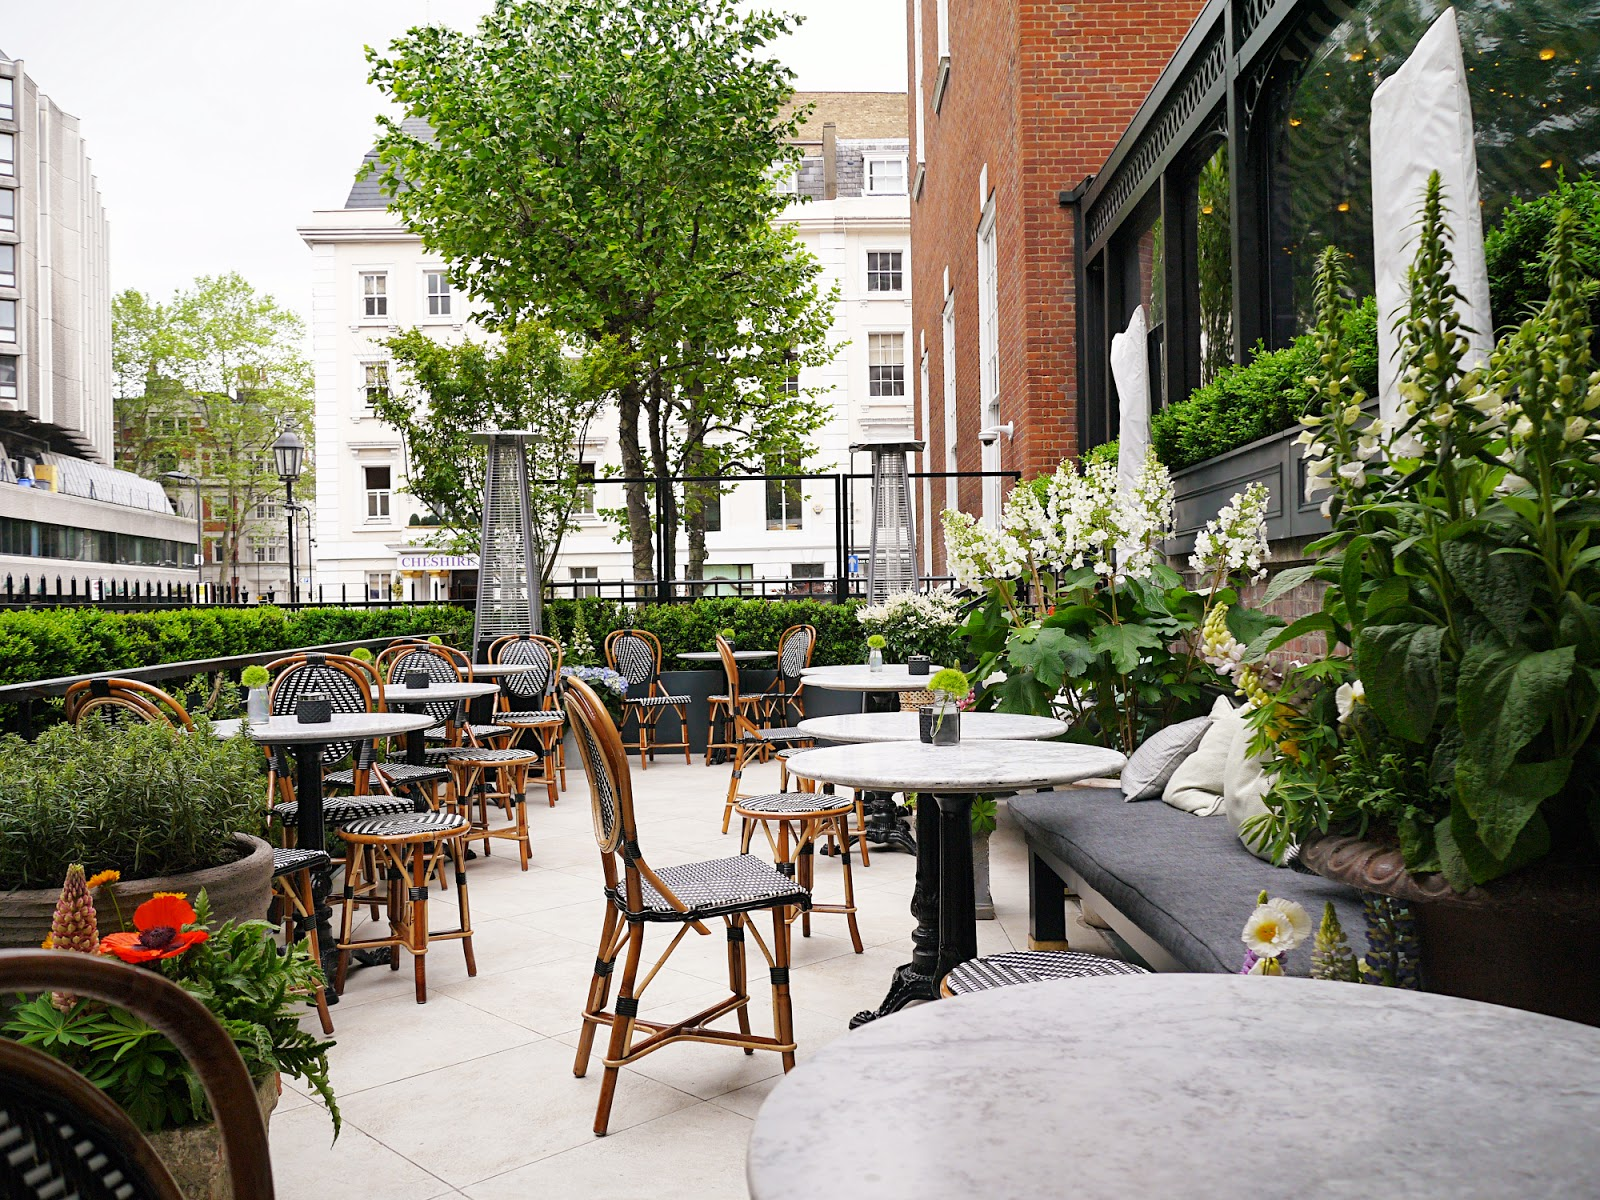 Dalloway Terrace in Bloomsbury, London